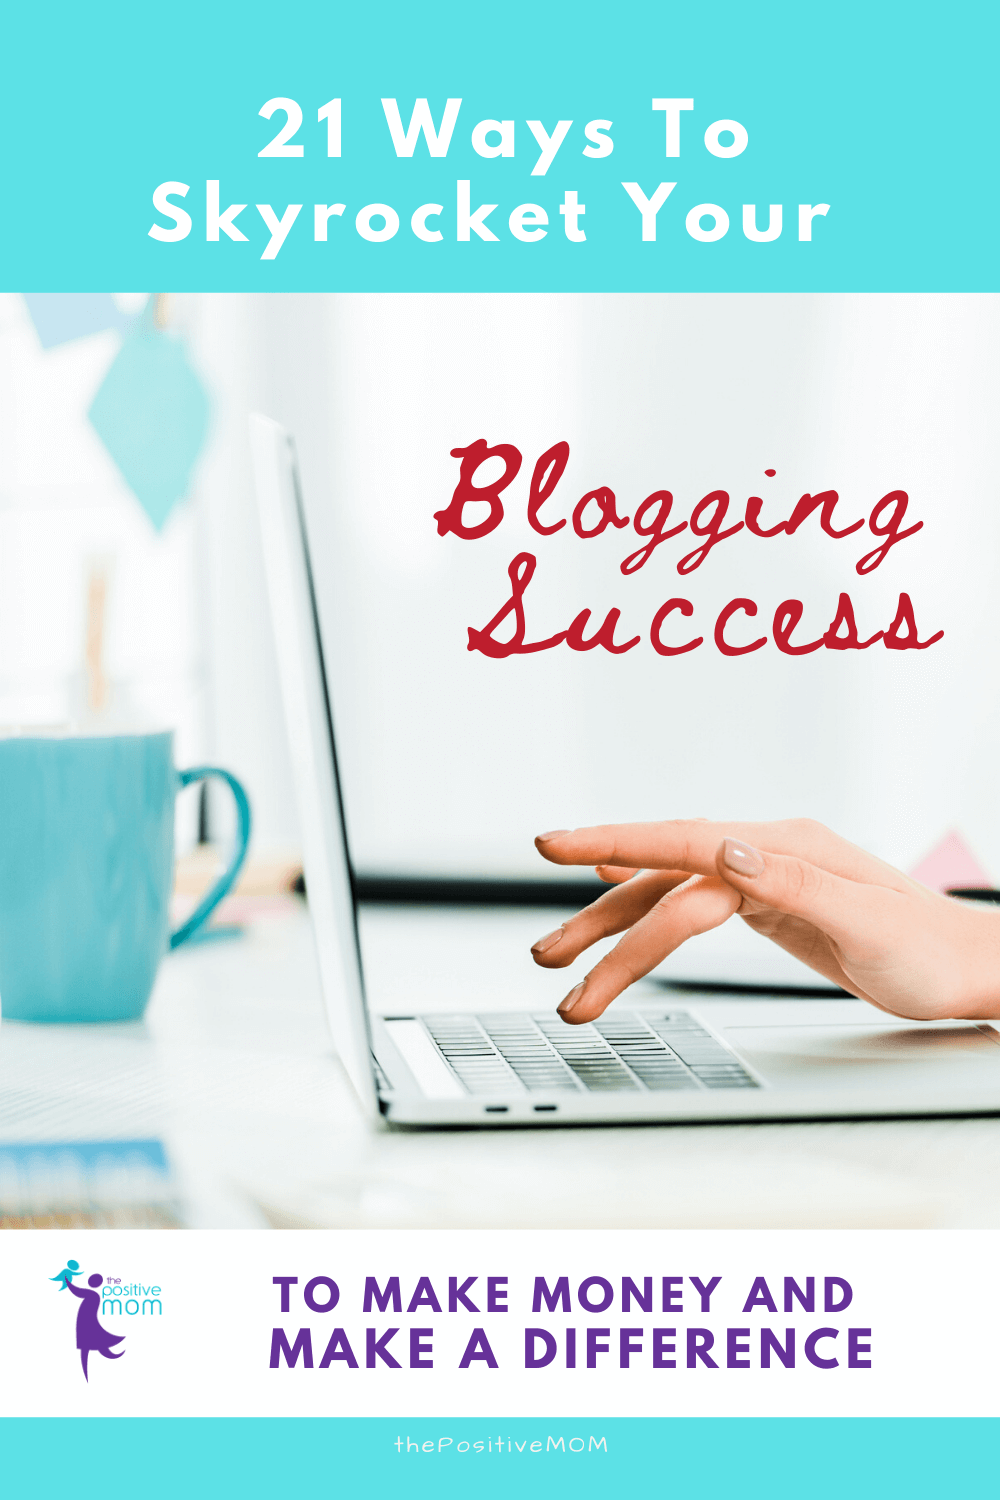 Learn 21 Ways To Skyrocket Your Blogging Success 6